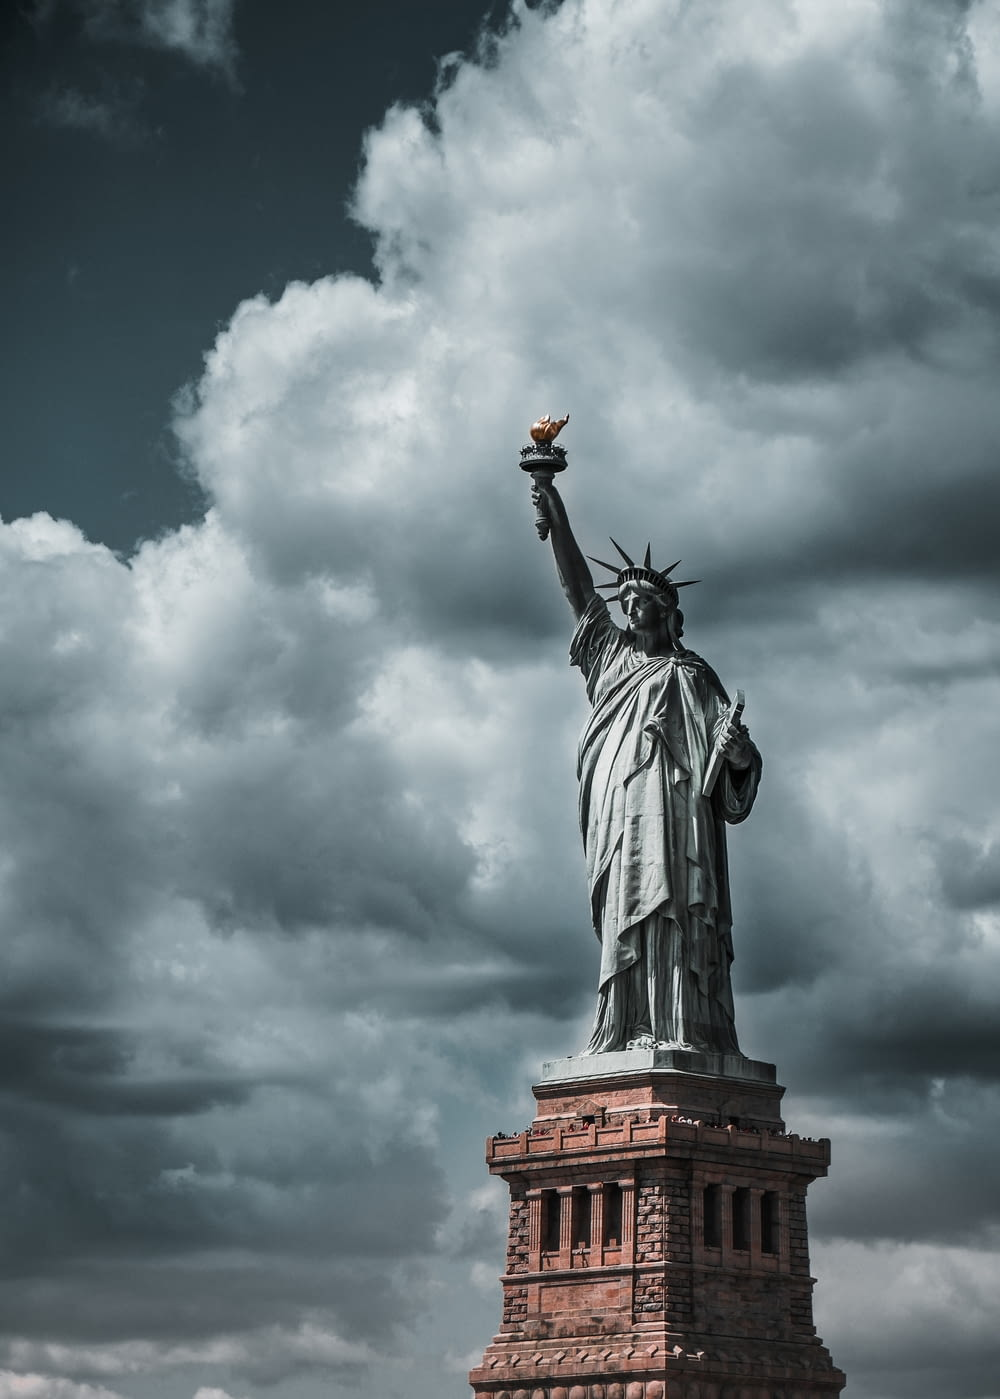 Statue of Liberty under cloudy sky during daytime